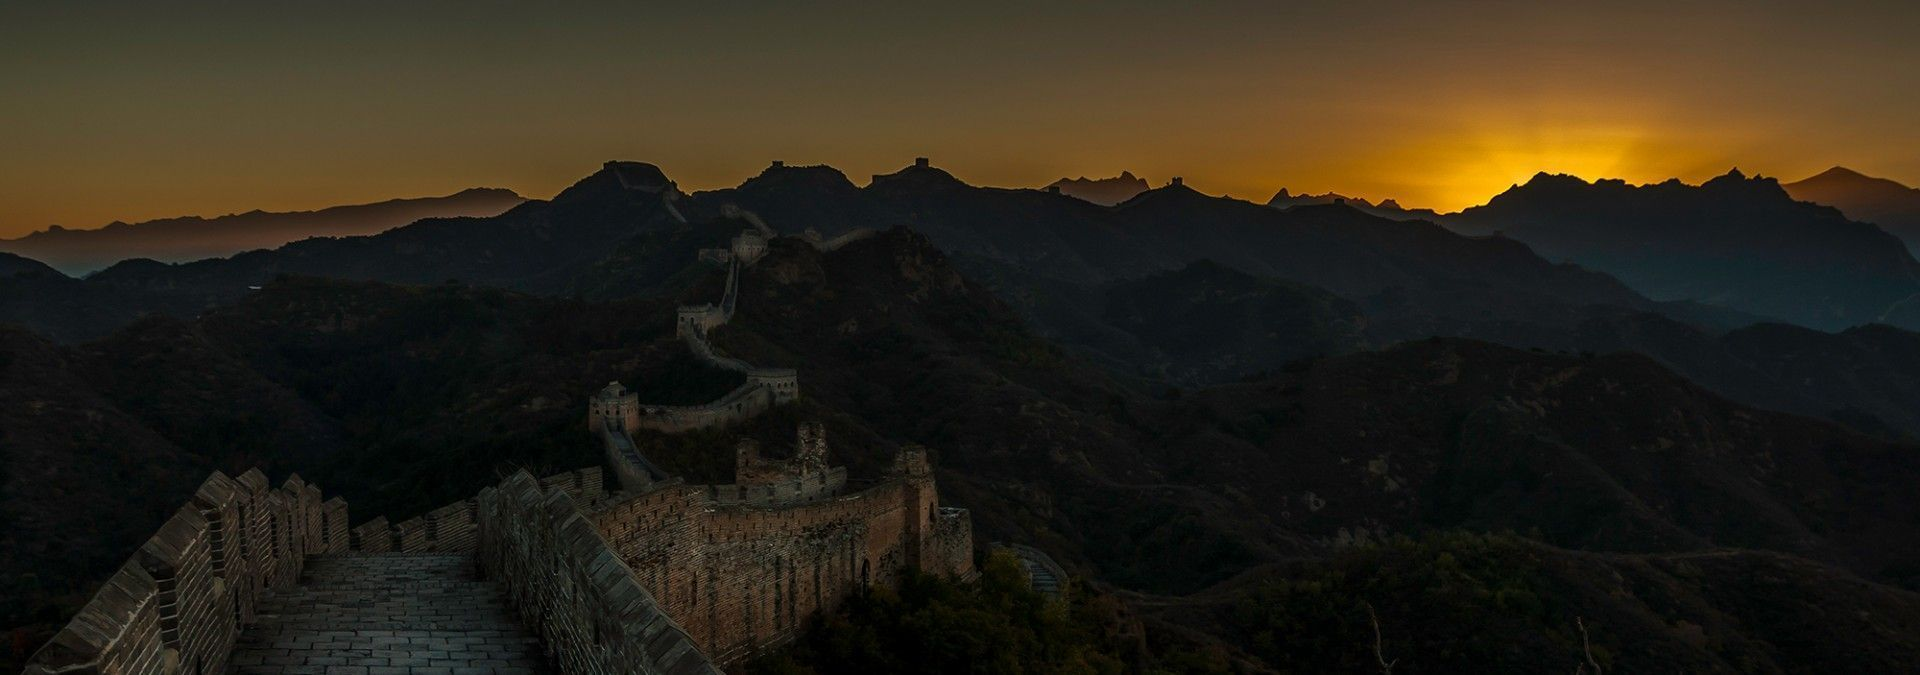 Great_Wall_of_China_at_sunset.jpg